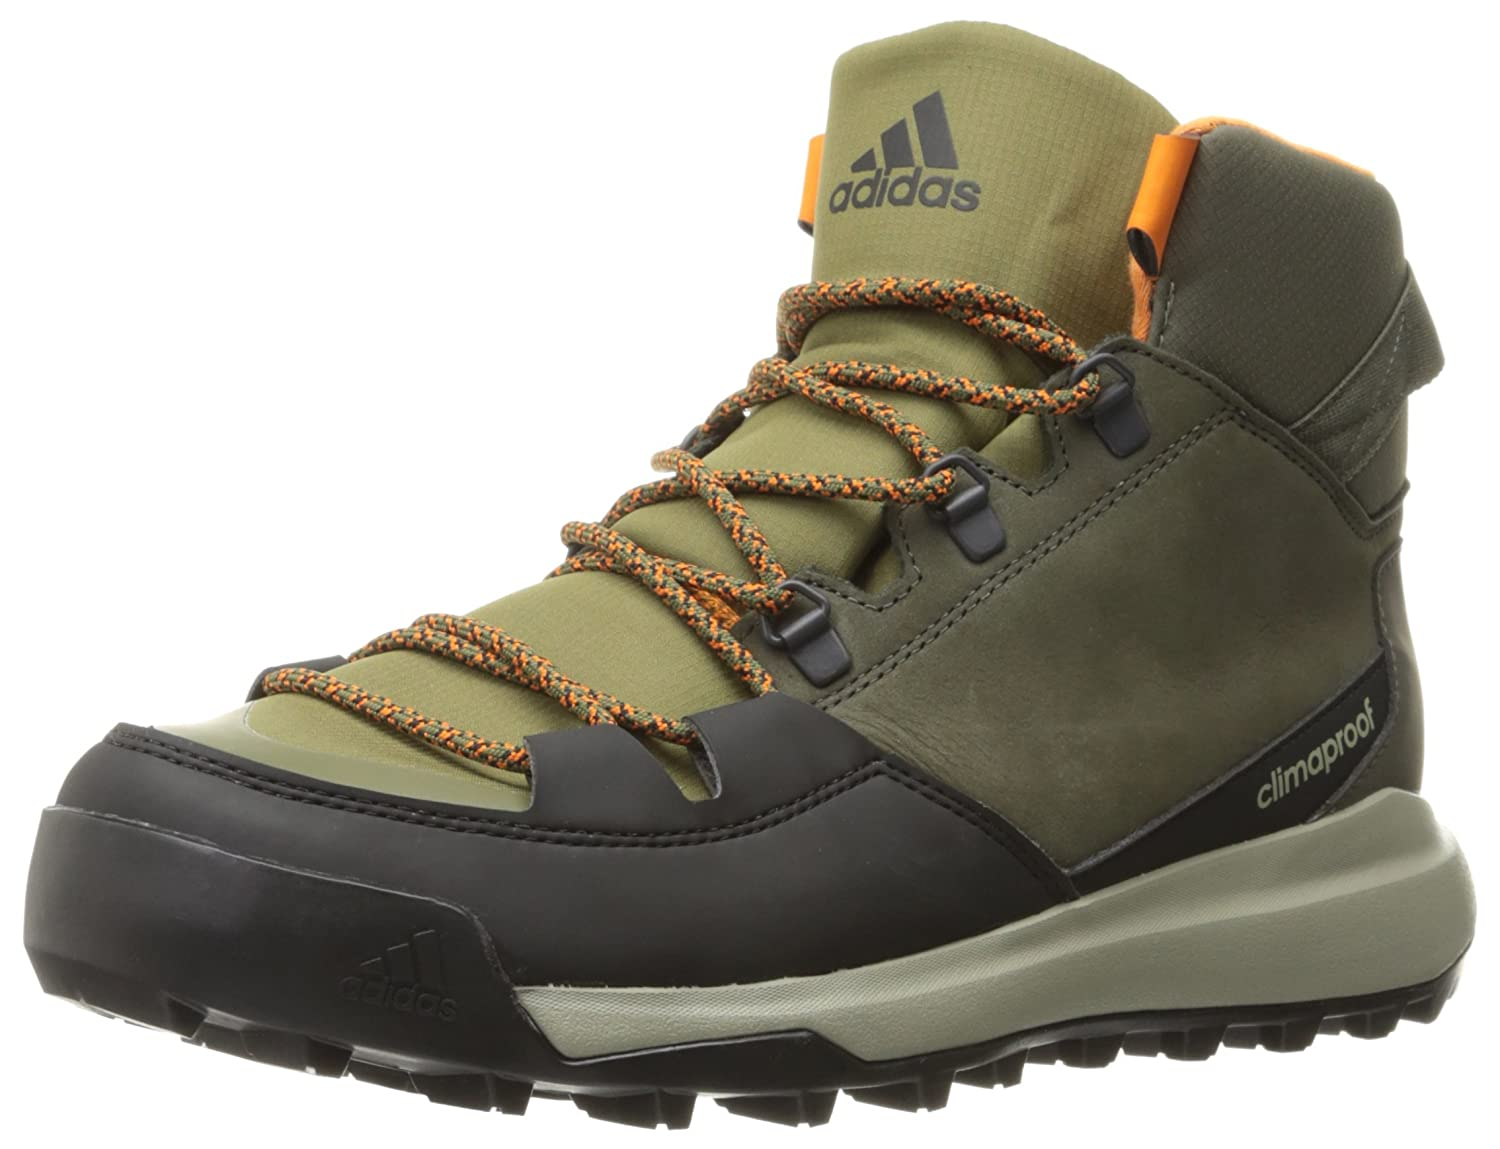 adidas Outdoor Men's CW Winterpitch Mid CP Leather Hiking Boot